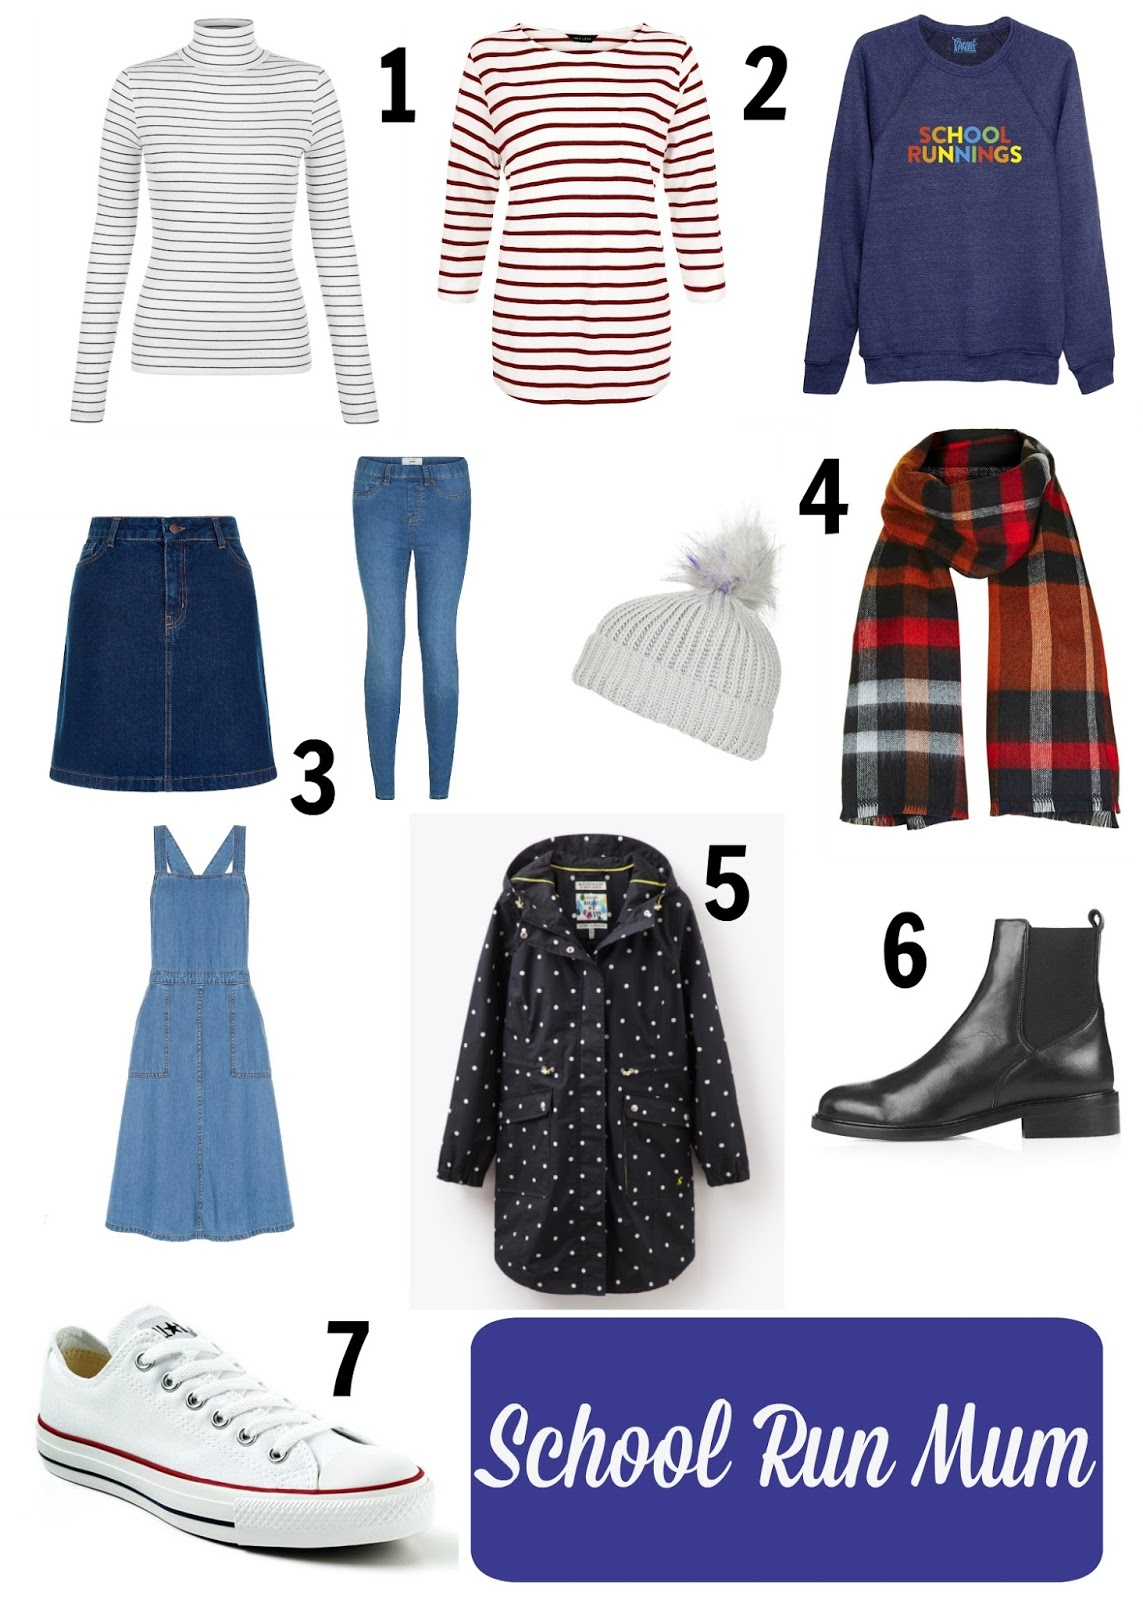 How to dress for school 24